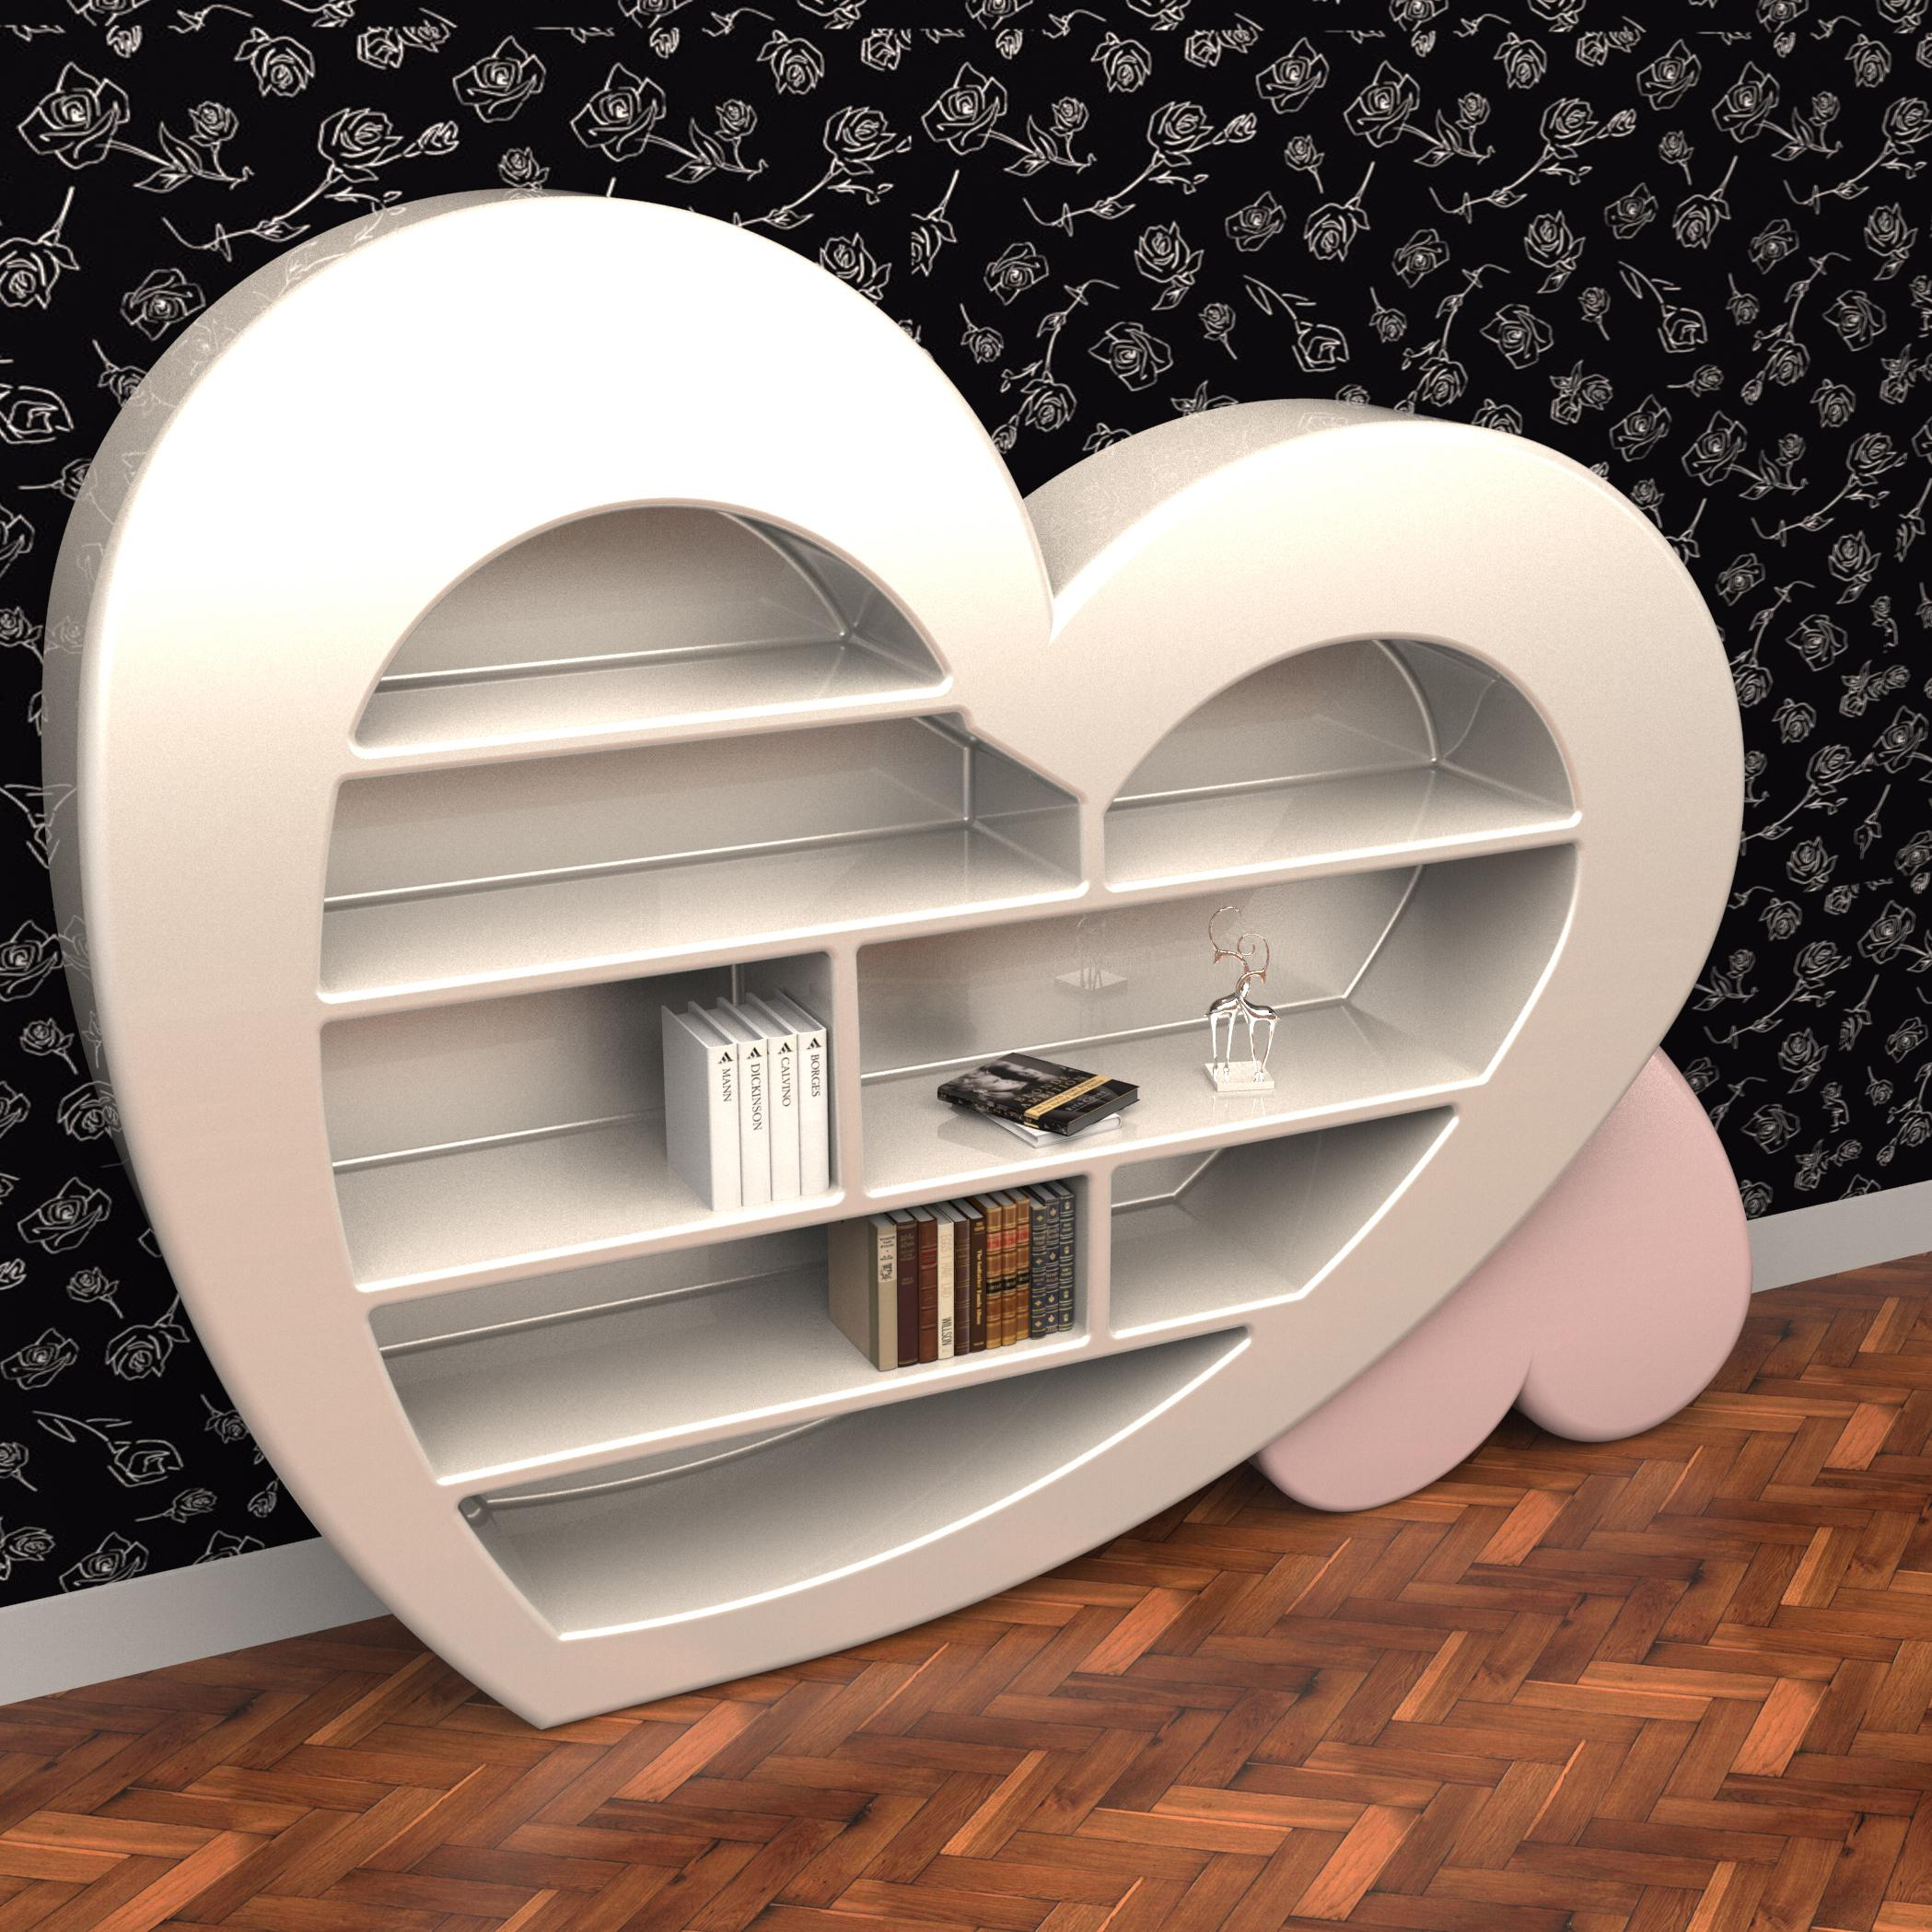 Cuore libreria italy dream design for Arredamento libreria design